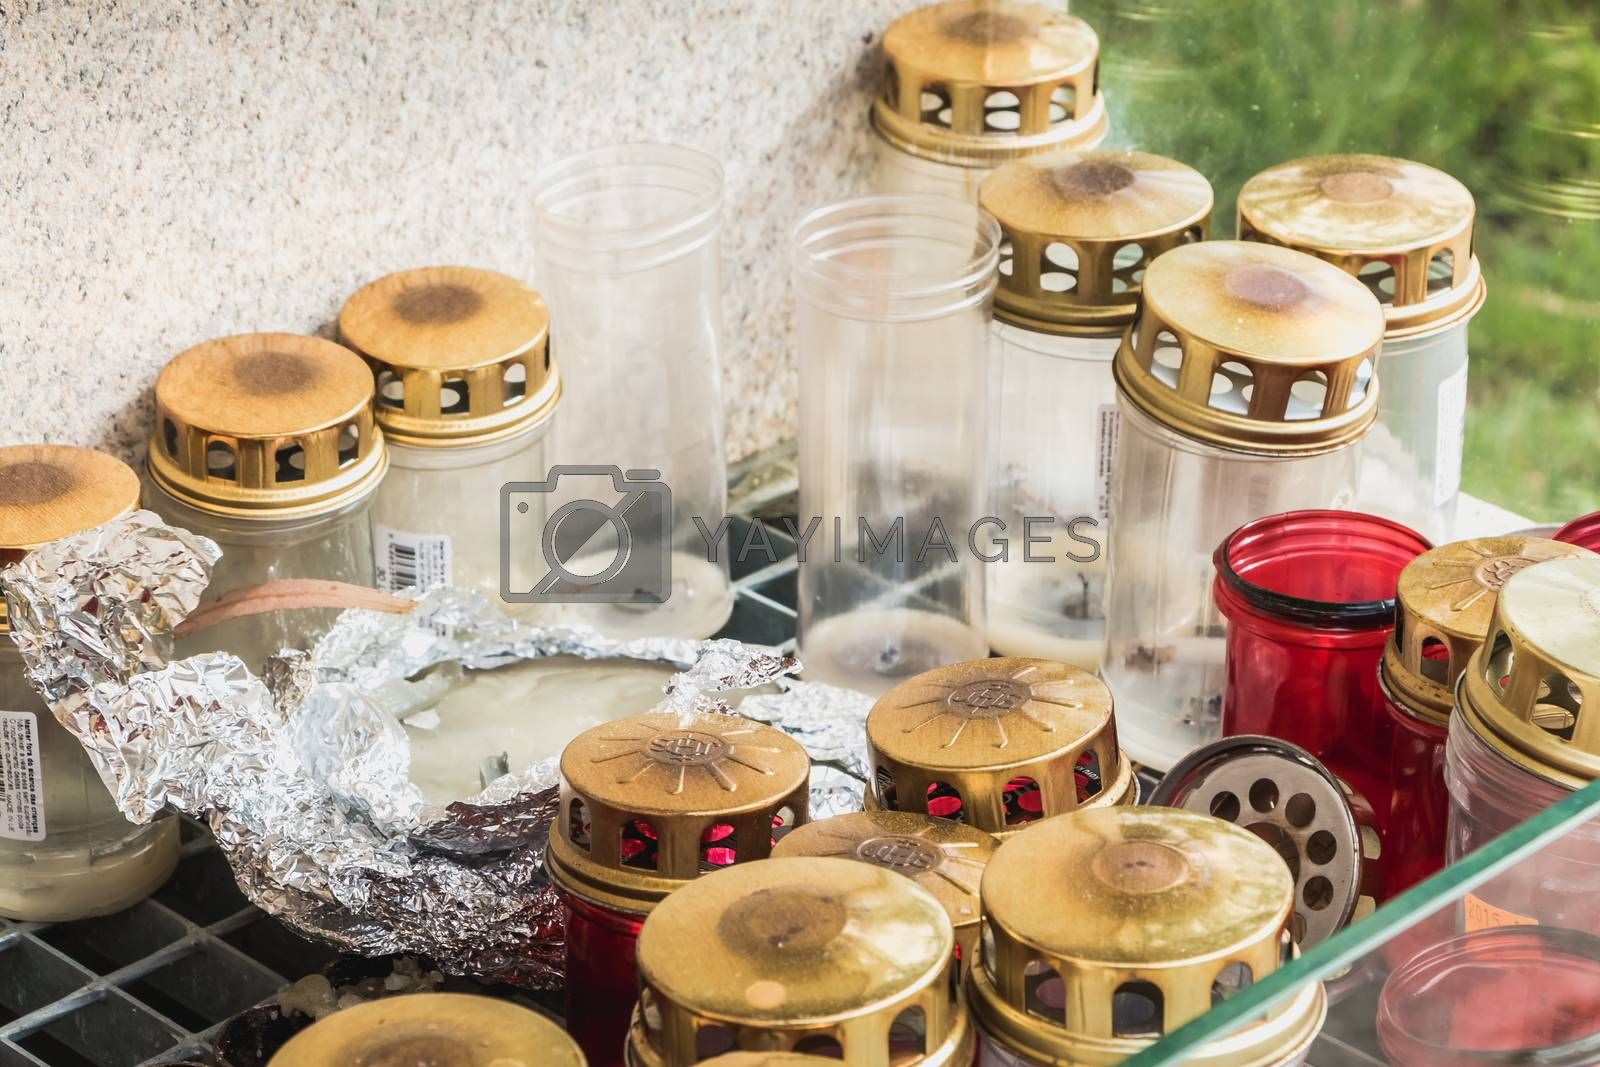 Vila Cha near Esposende, Portugal - May 9, 2018: candlestick protected by a glass outside the chapel of S. Lourenco on the heights of the city on a spring day